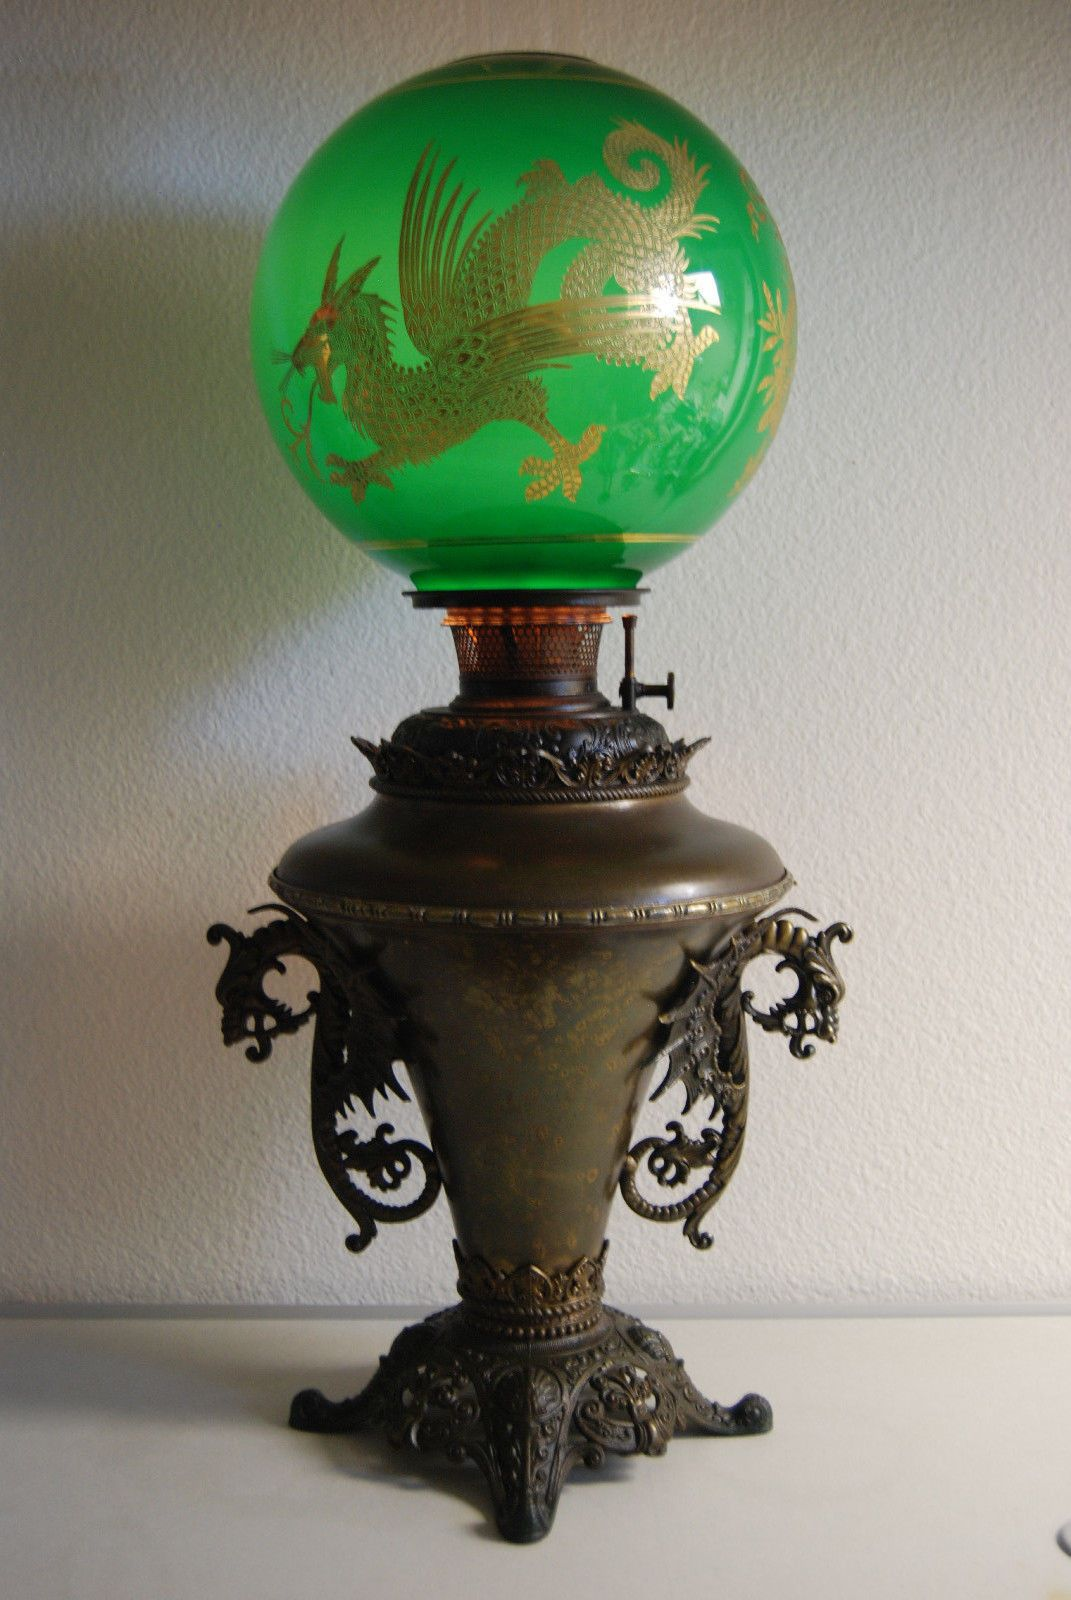 Dragon Lamps For Sale Details About Antique Kerosene Oil Gwtw B H Chinese Dragon Emerald